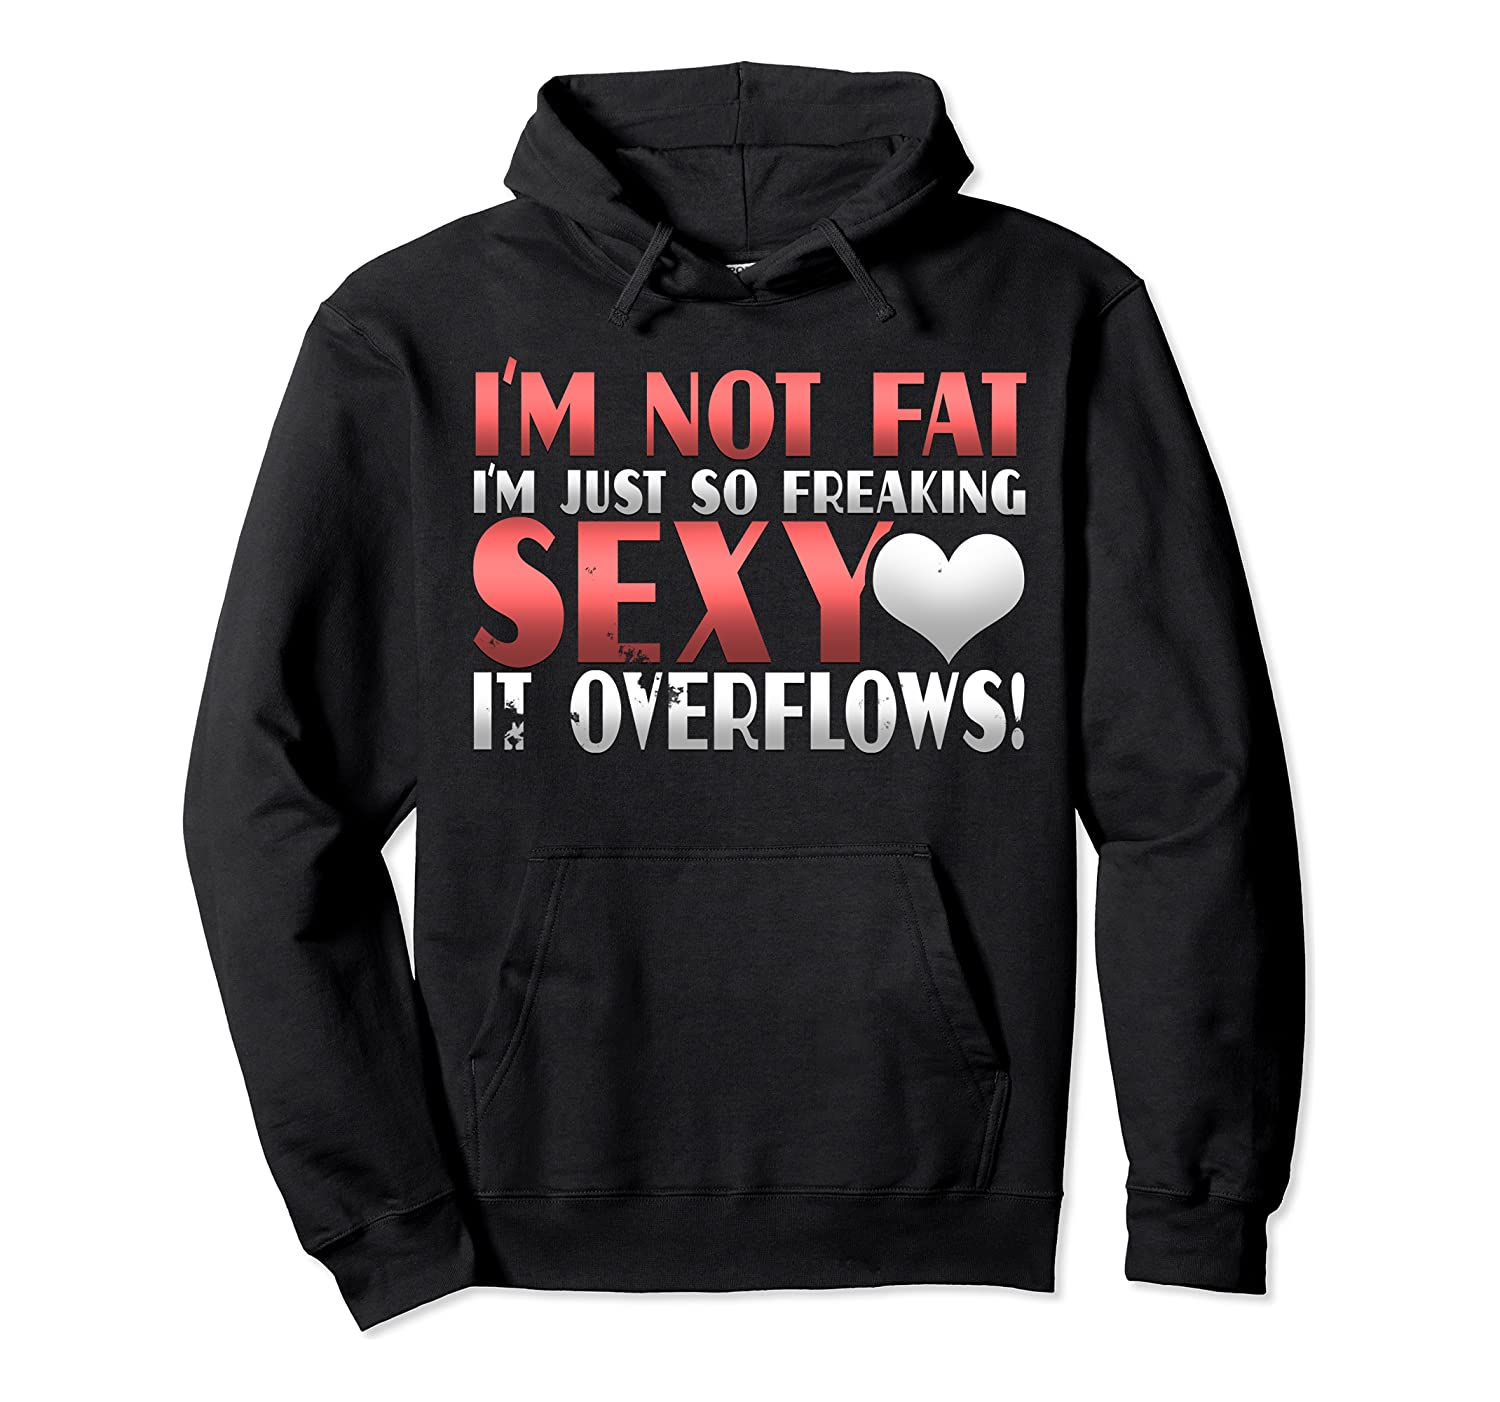 I'm Not Fat I'm Just So Freakin Sexy It Overflows Shirts Unisex Pullover Hoodie